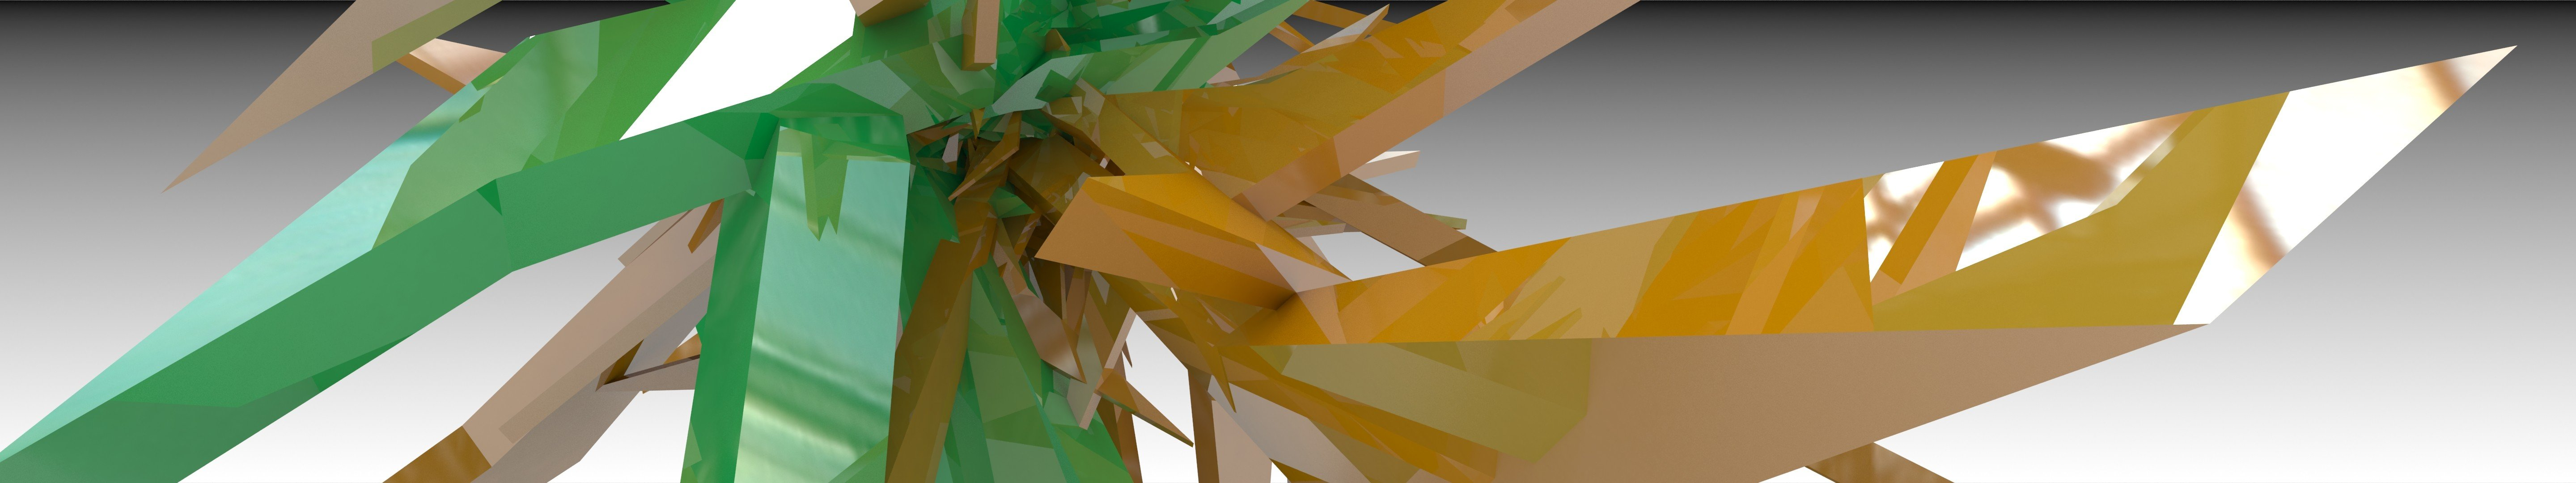 green abstract orange spikes 3D renders 3D art 3DS Max  vray